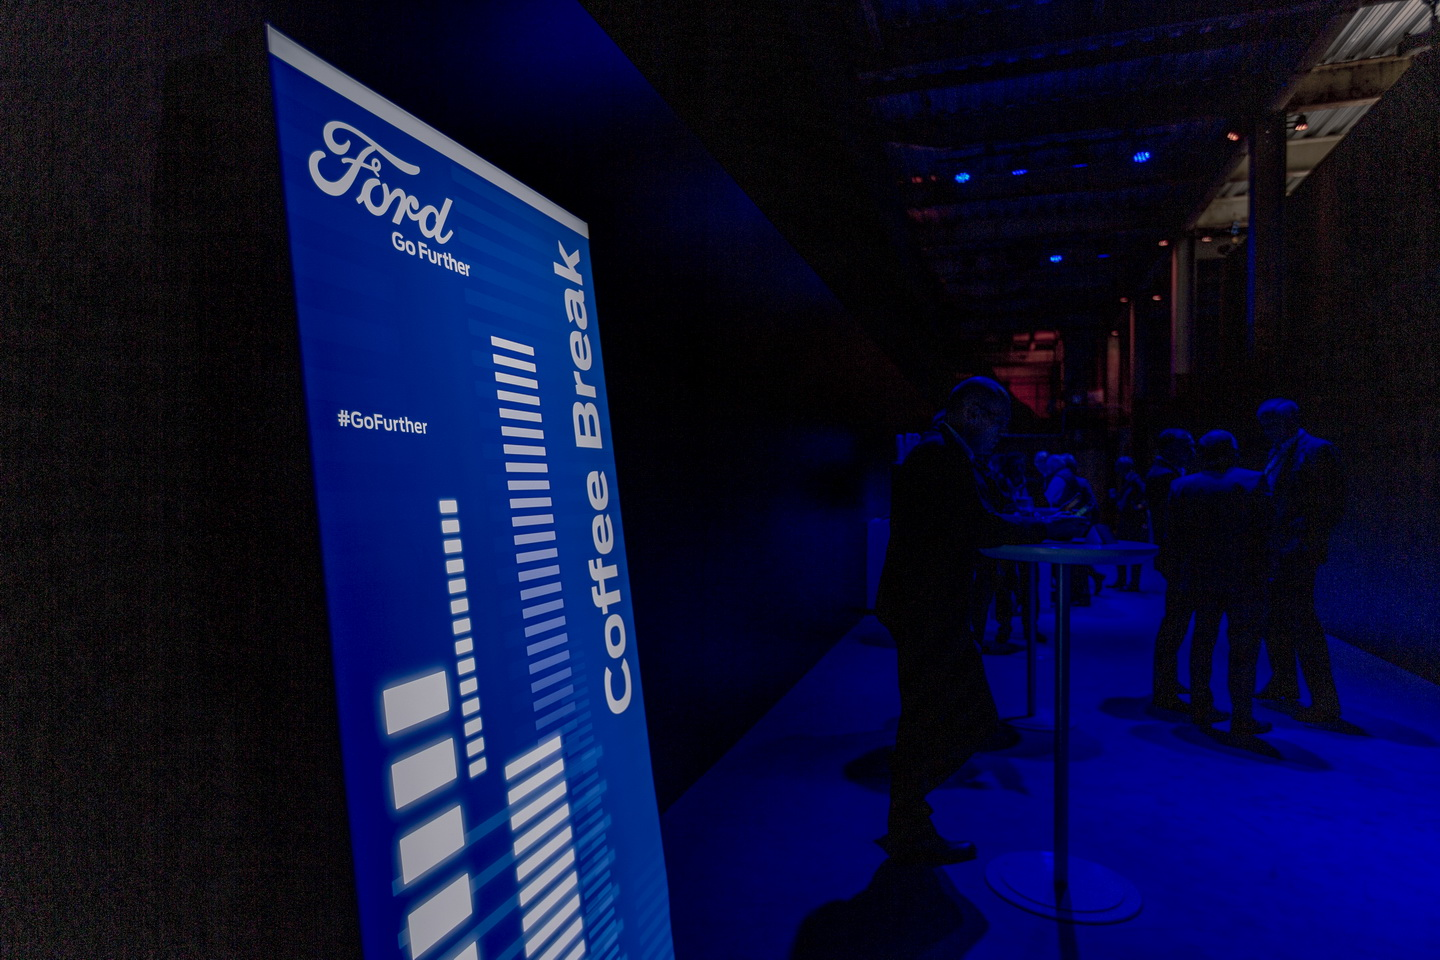 Ford Go Further 2019 event hybrid cars 76